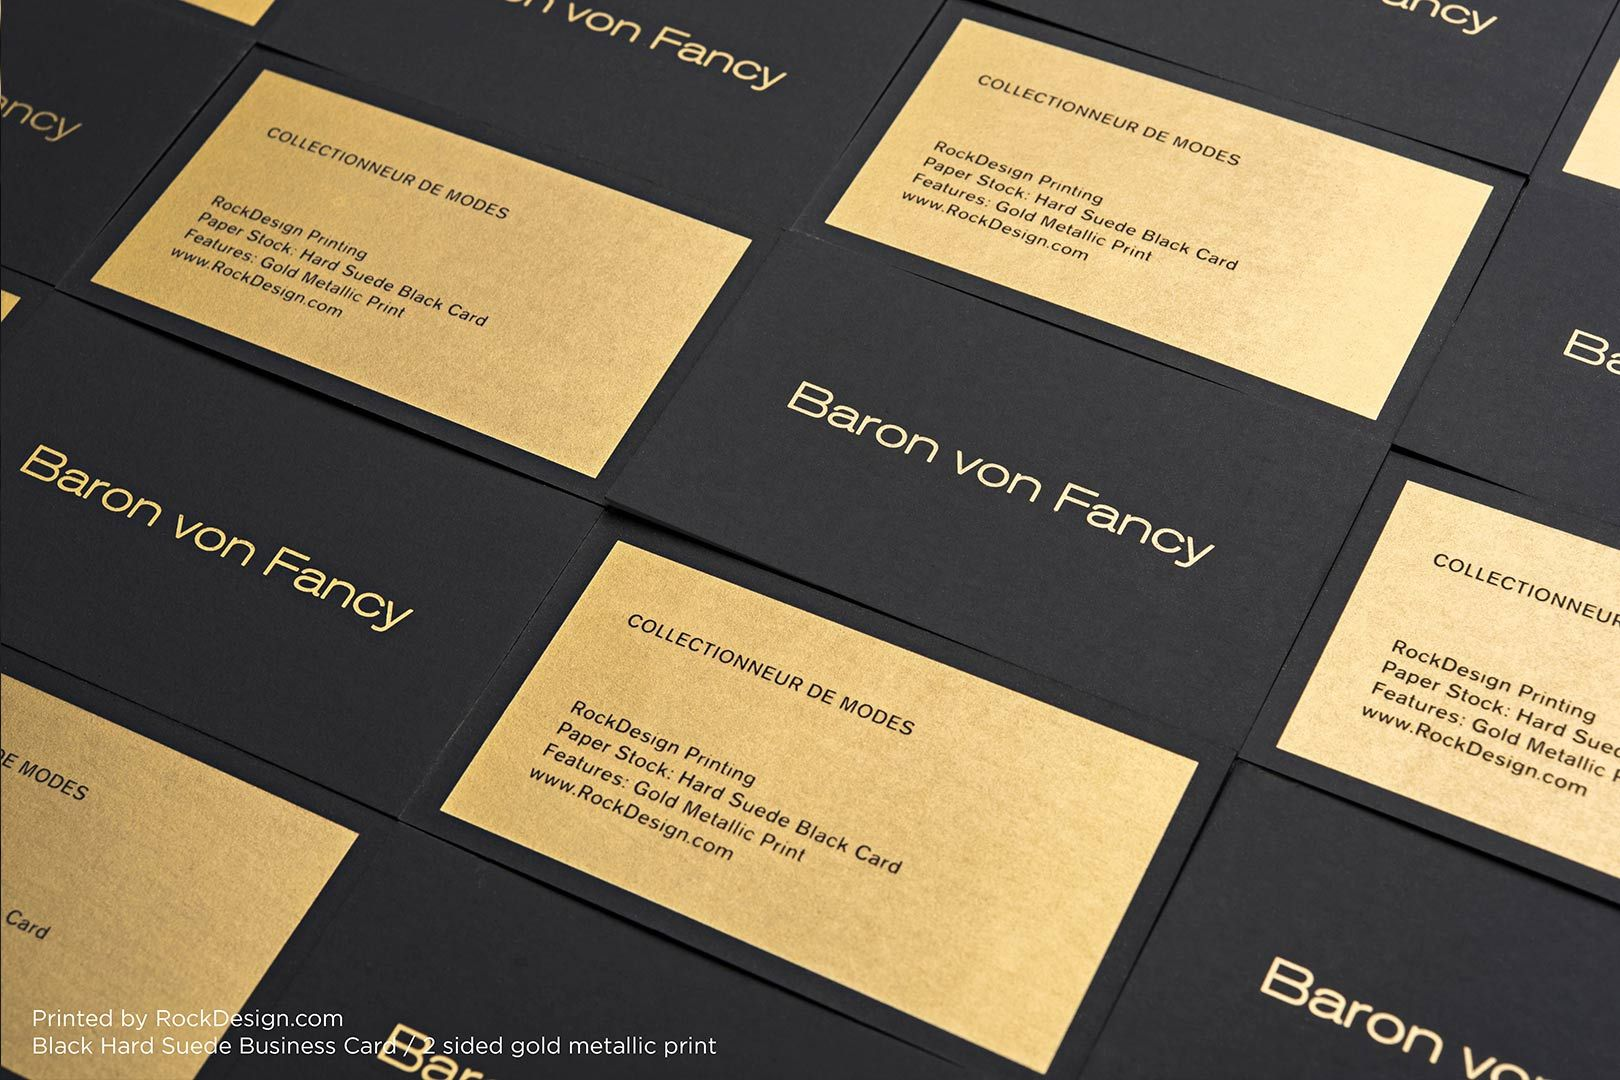 Hard Suede Business Cards | RockDesign Luxury Business Card ...